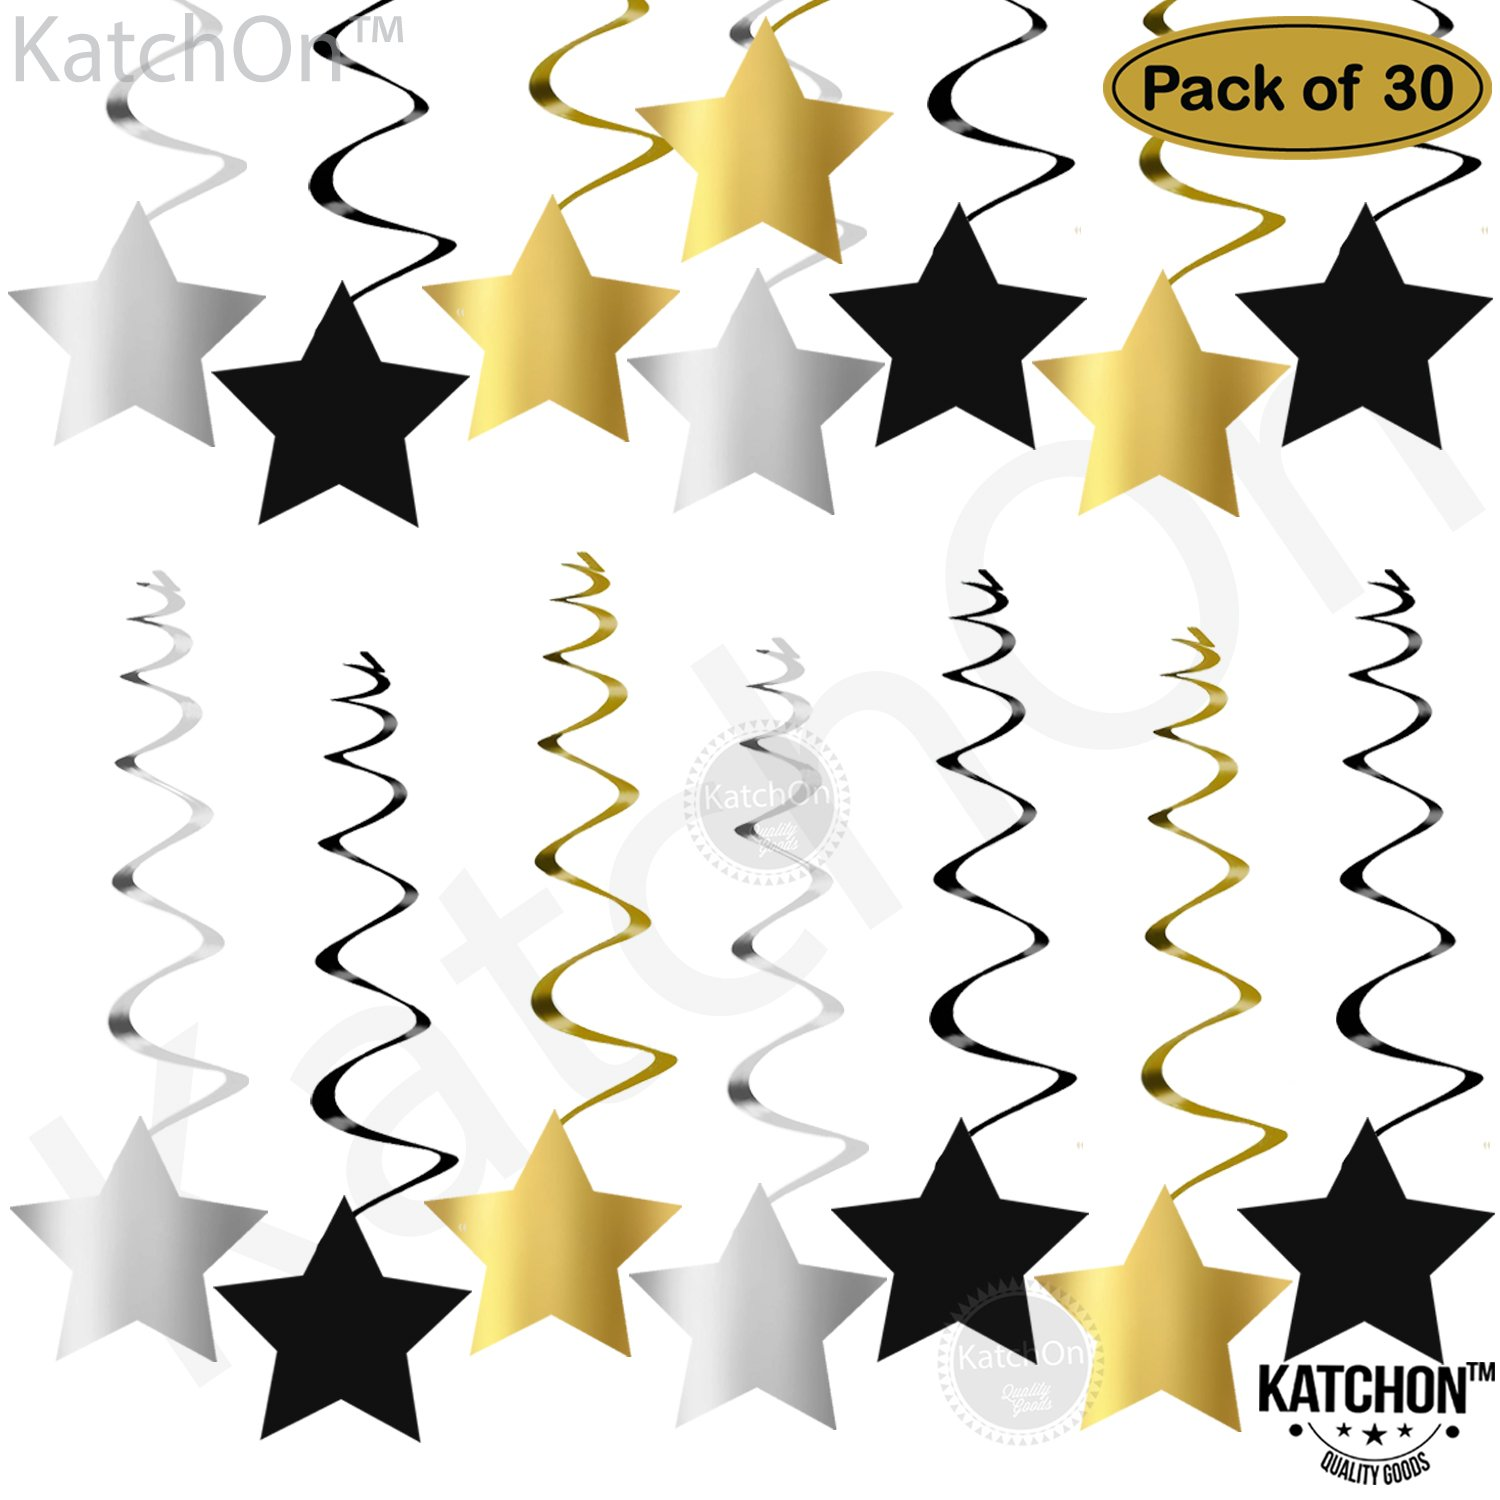 CDM product KATCHON Hanging Star Swirls Decorations Kit - Gold, Black and Silver | No DIY Requried | Great for Graduation Decorations Party Supplies , Events, New Year Black and Gold Party Decorations big image